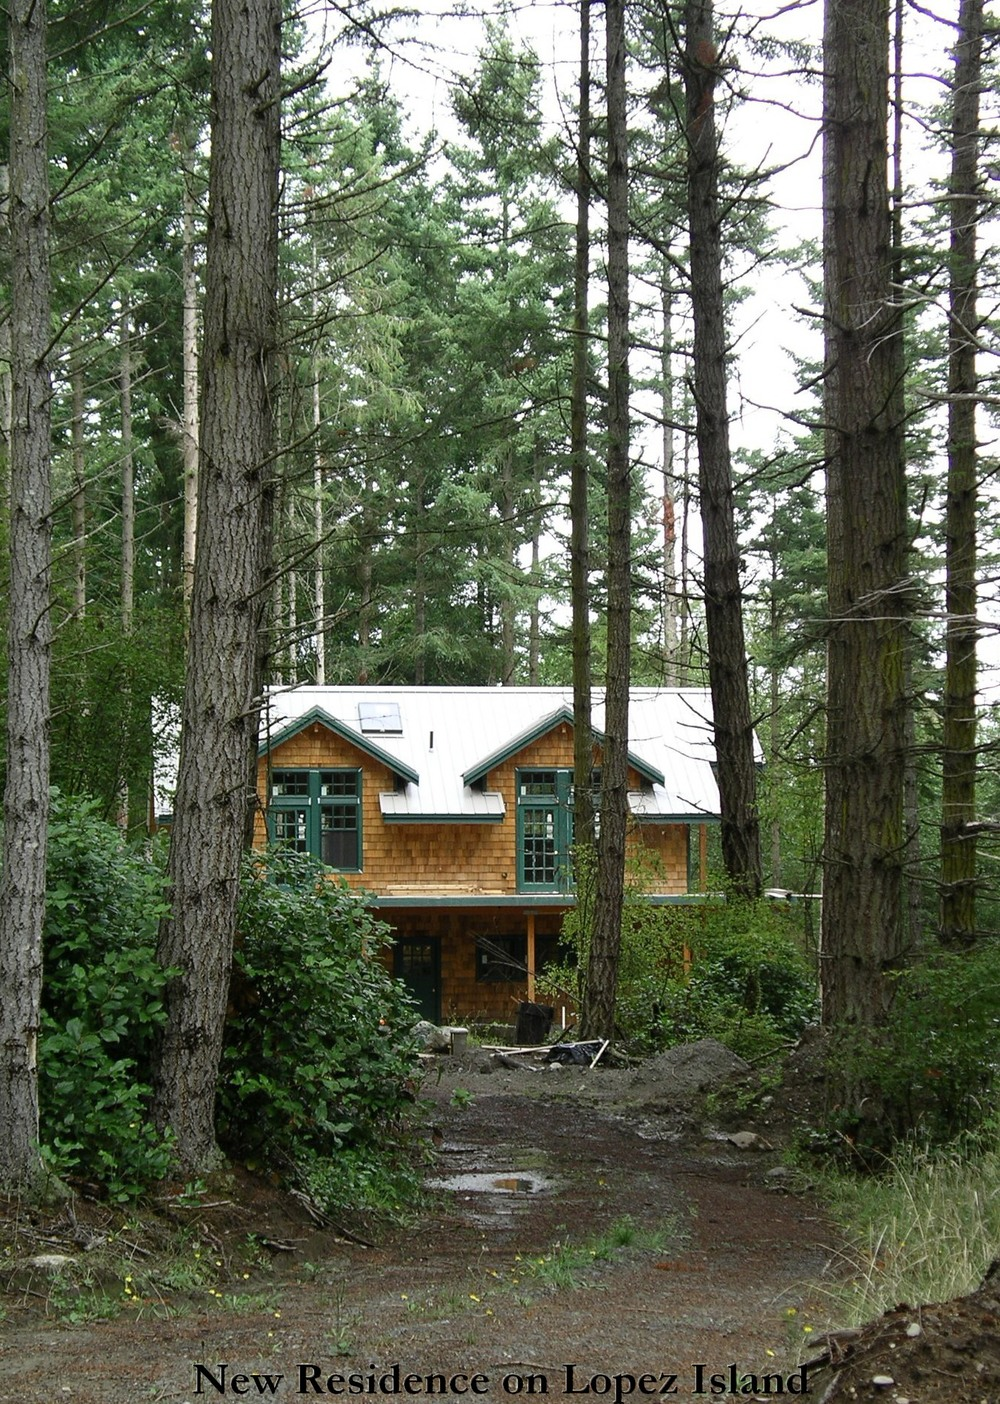 1 Lopez Island House - In the woods.JPG